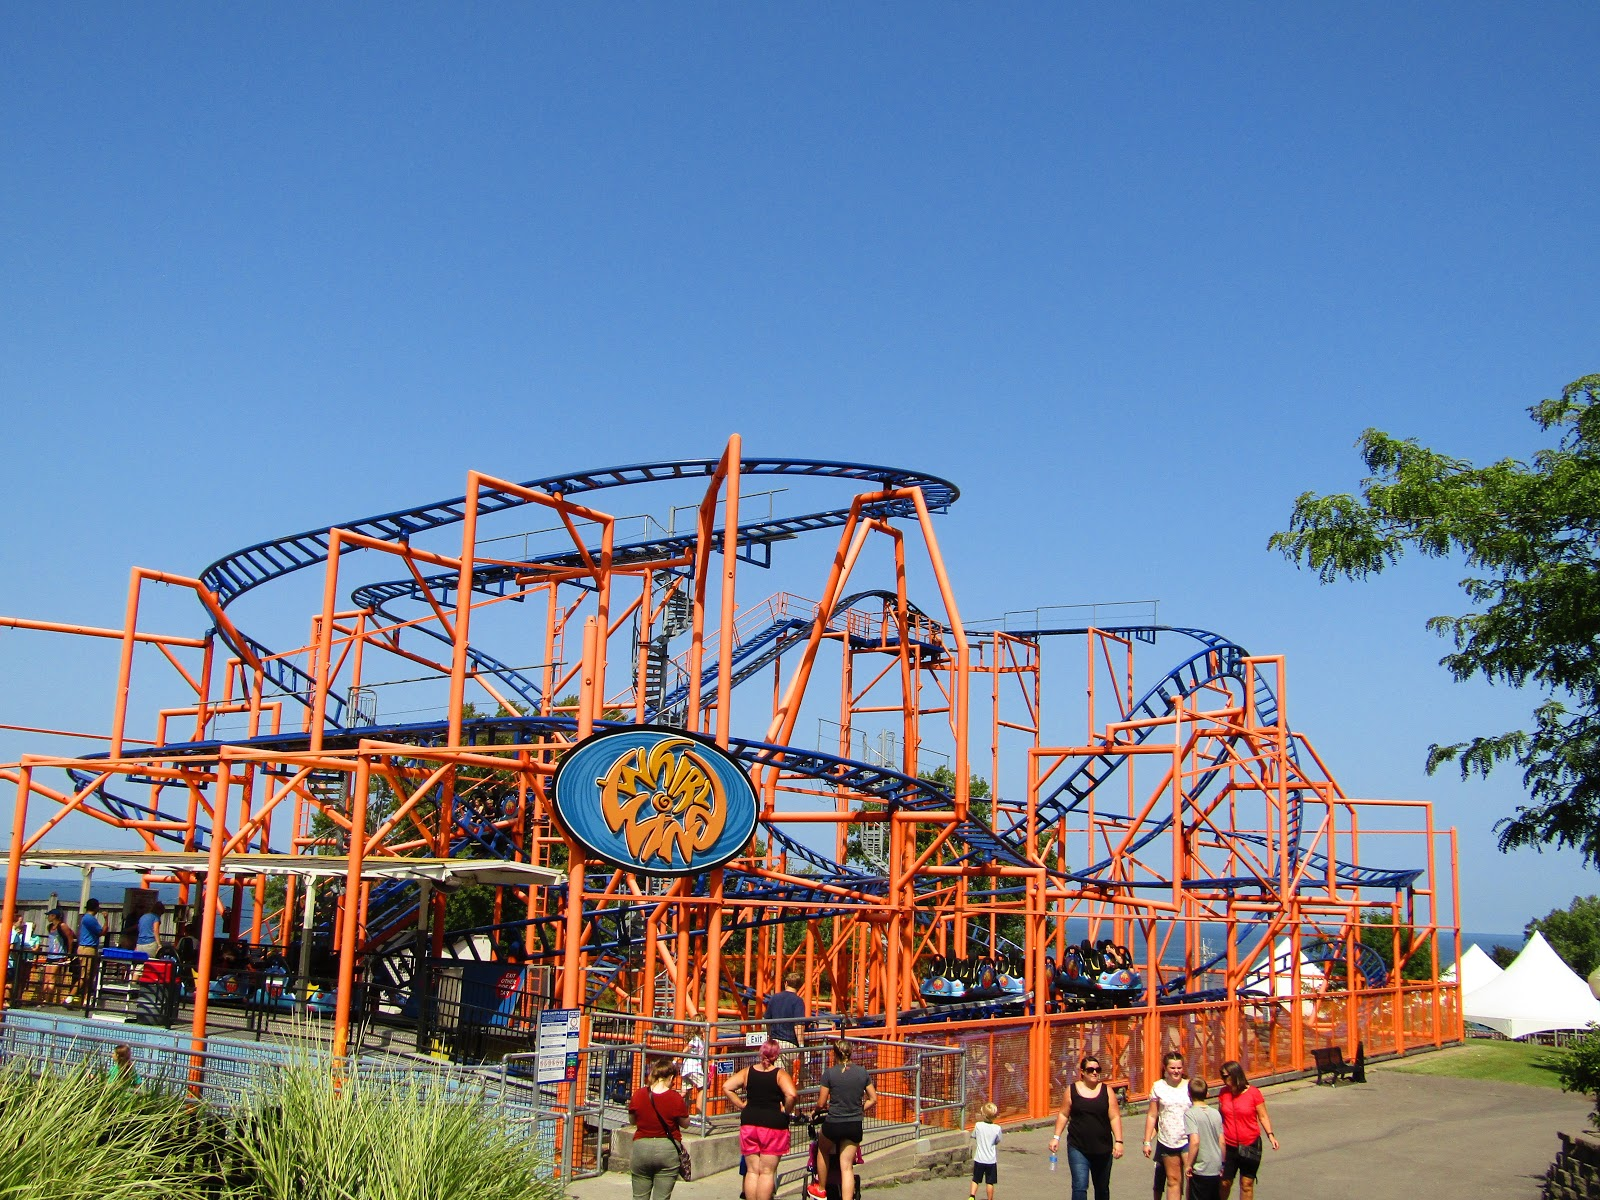 Seabreeze in Rochester, New York celebrated its th anniversary in The park opened on August 5, , as the last stop on the steam railroad. The attractions at the time were picnic groves and the lakefront and it wasn't until the early s that rides were added creating the amusement park.